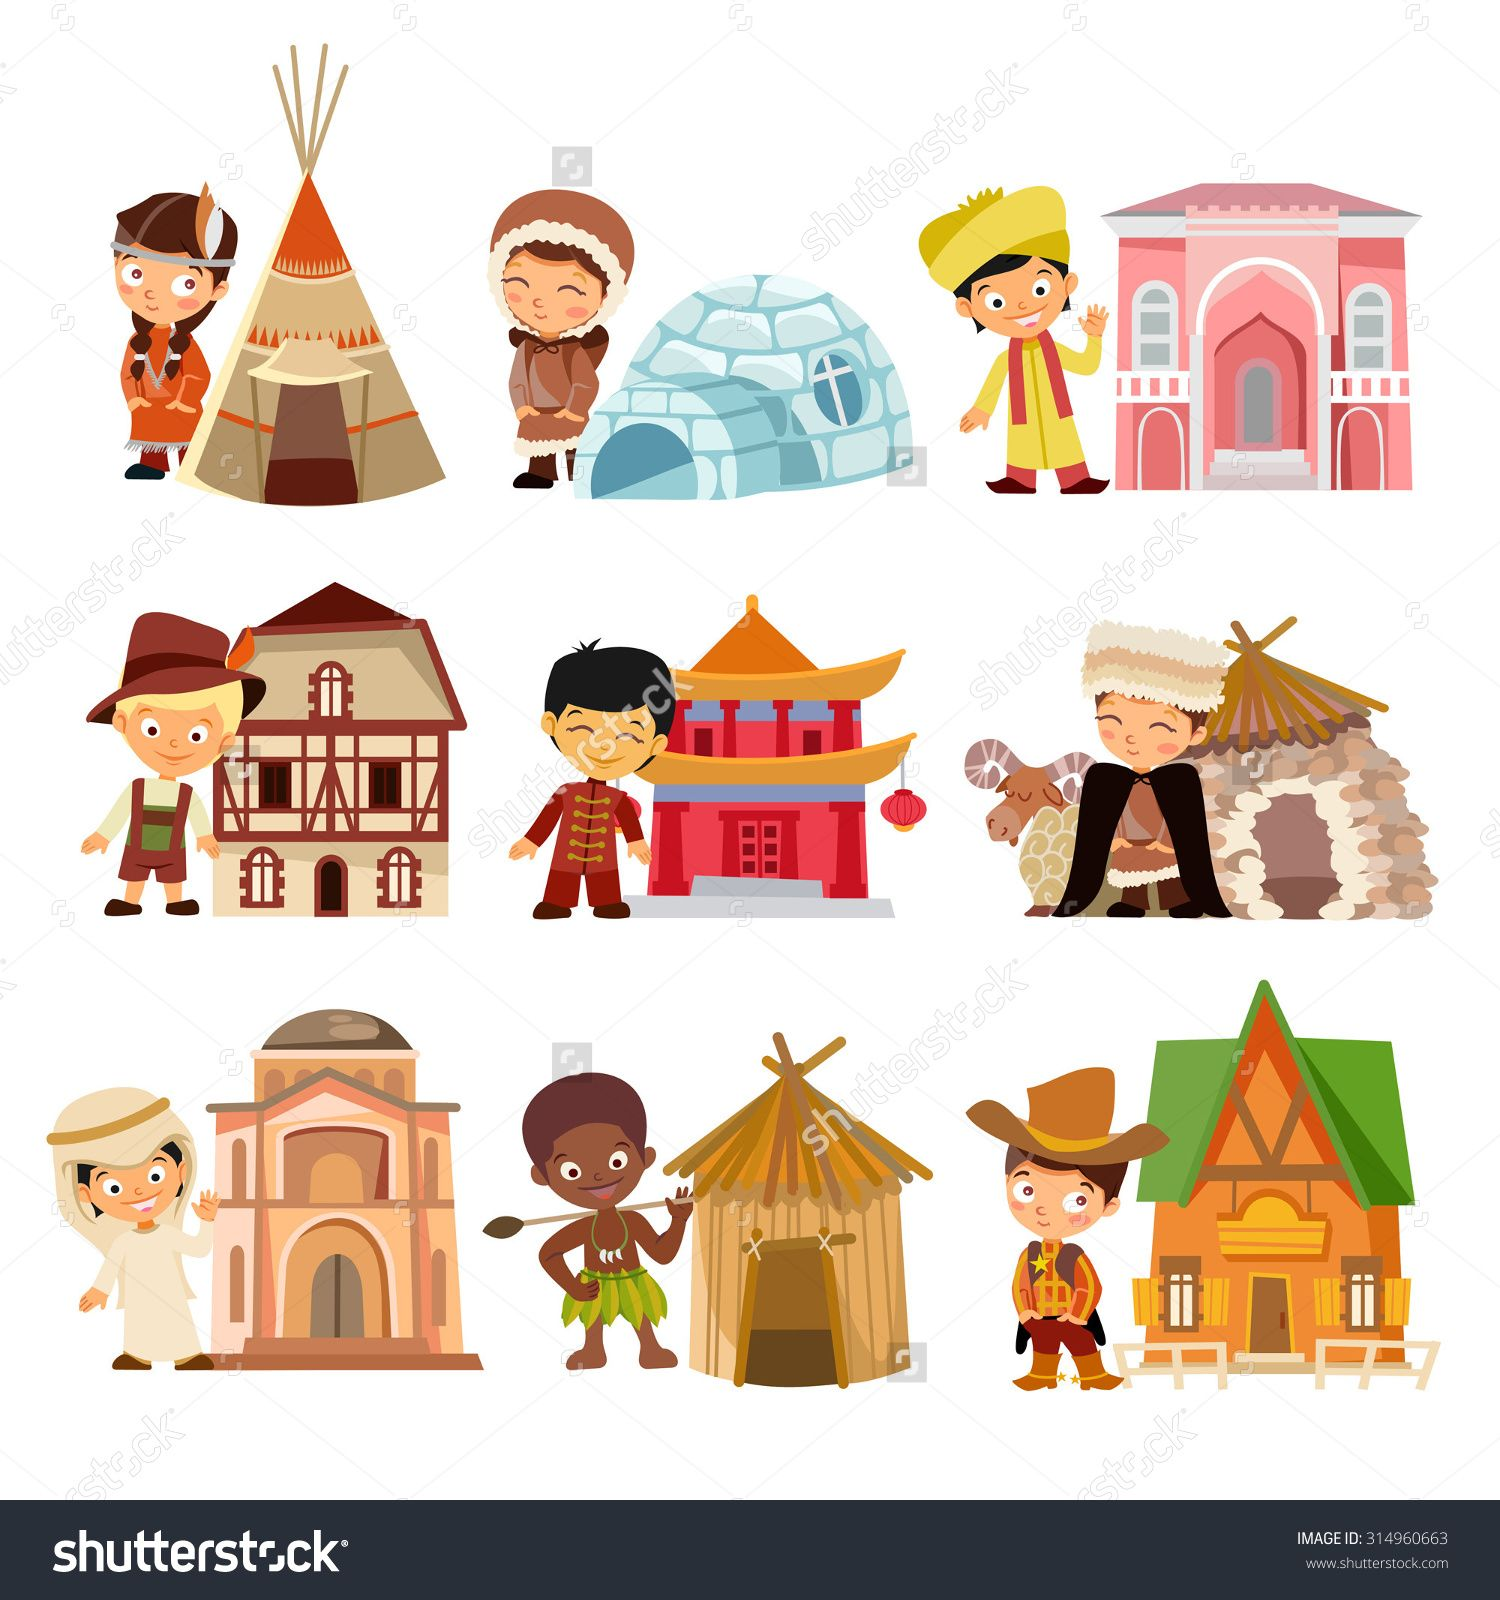 Apartments Around The World: People Of Various Nationalities With Their Traditional